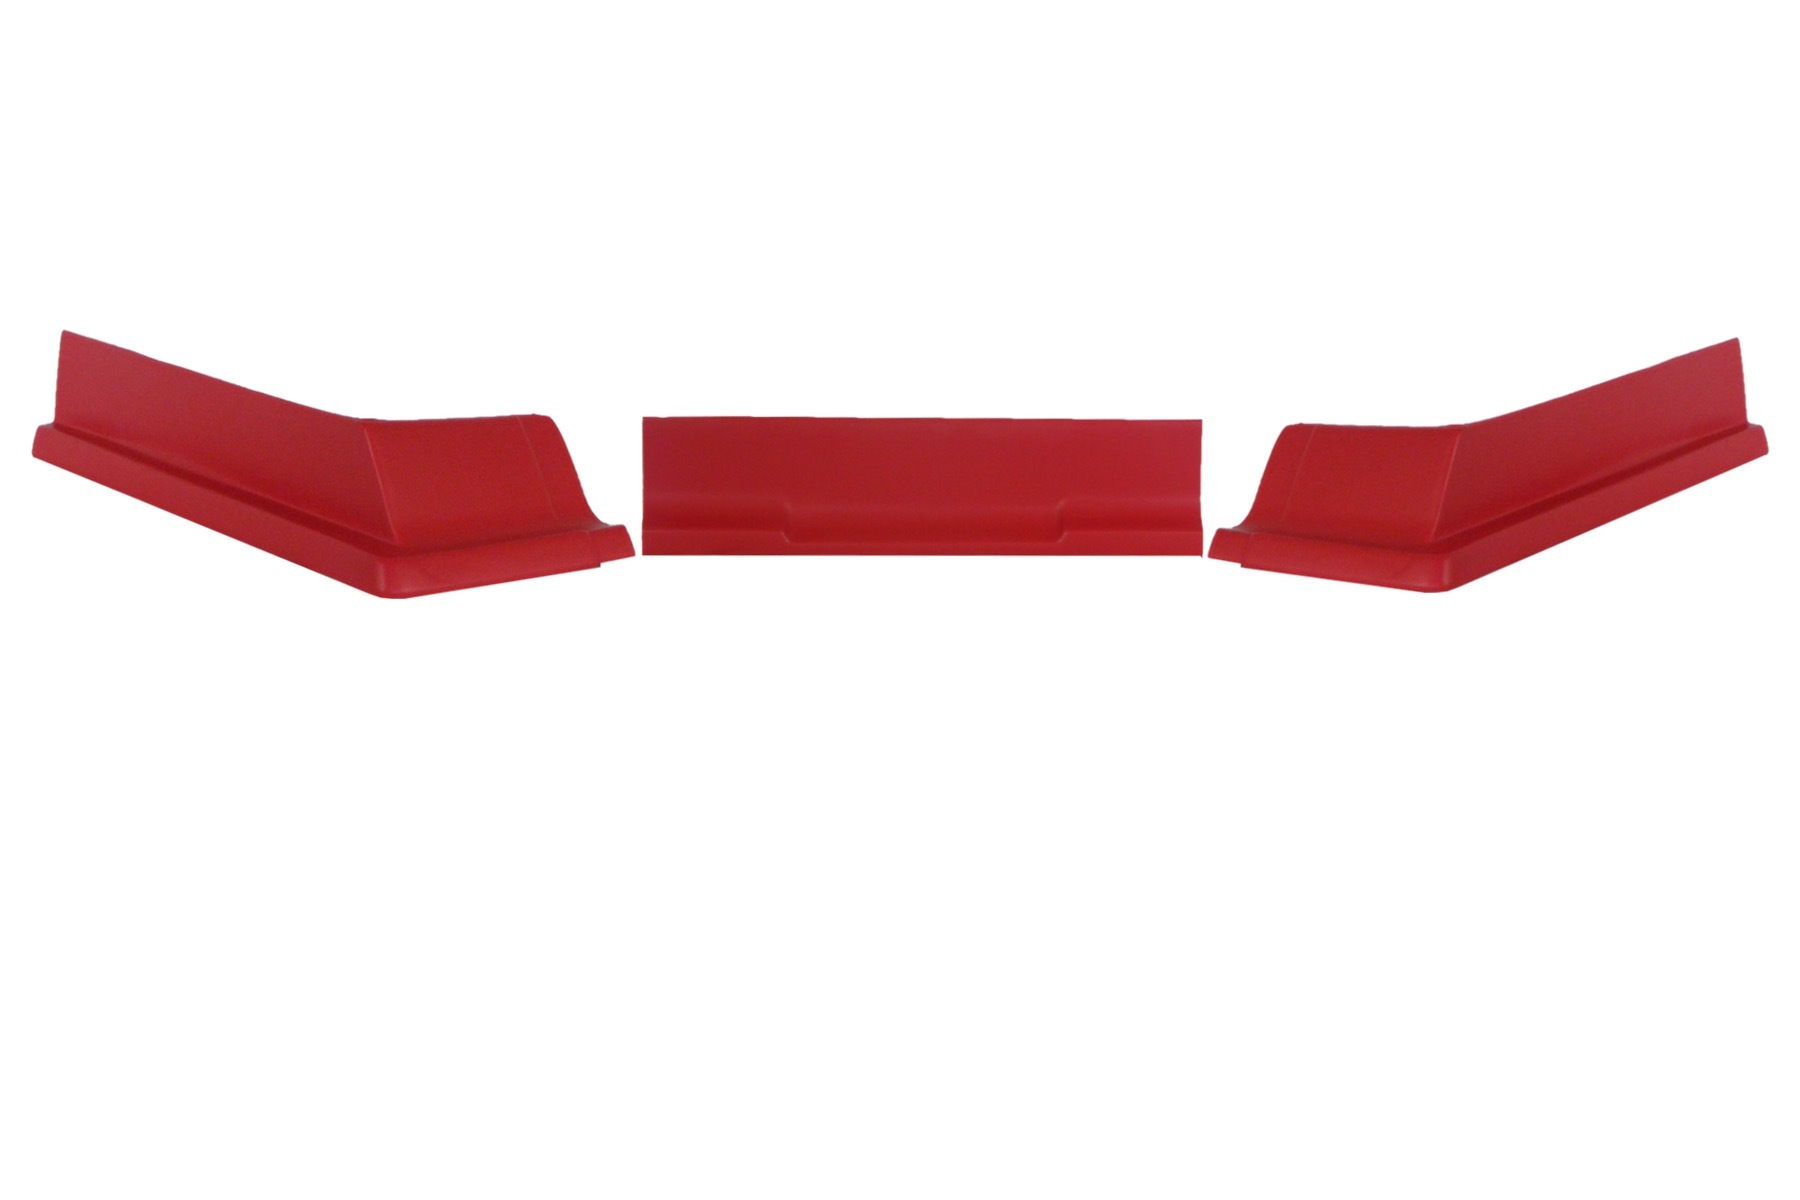 Dominator Racing Products 409-RD Air Valance, 3 Piece, Molded Plastic, Red, Dirt Modified, Each